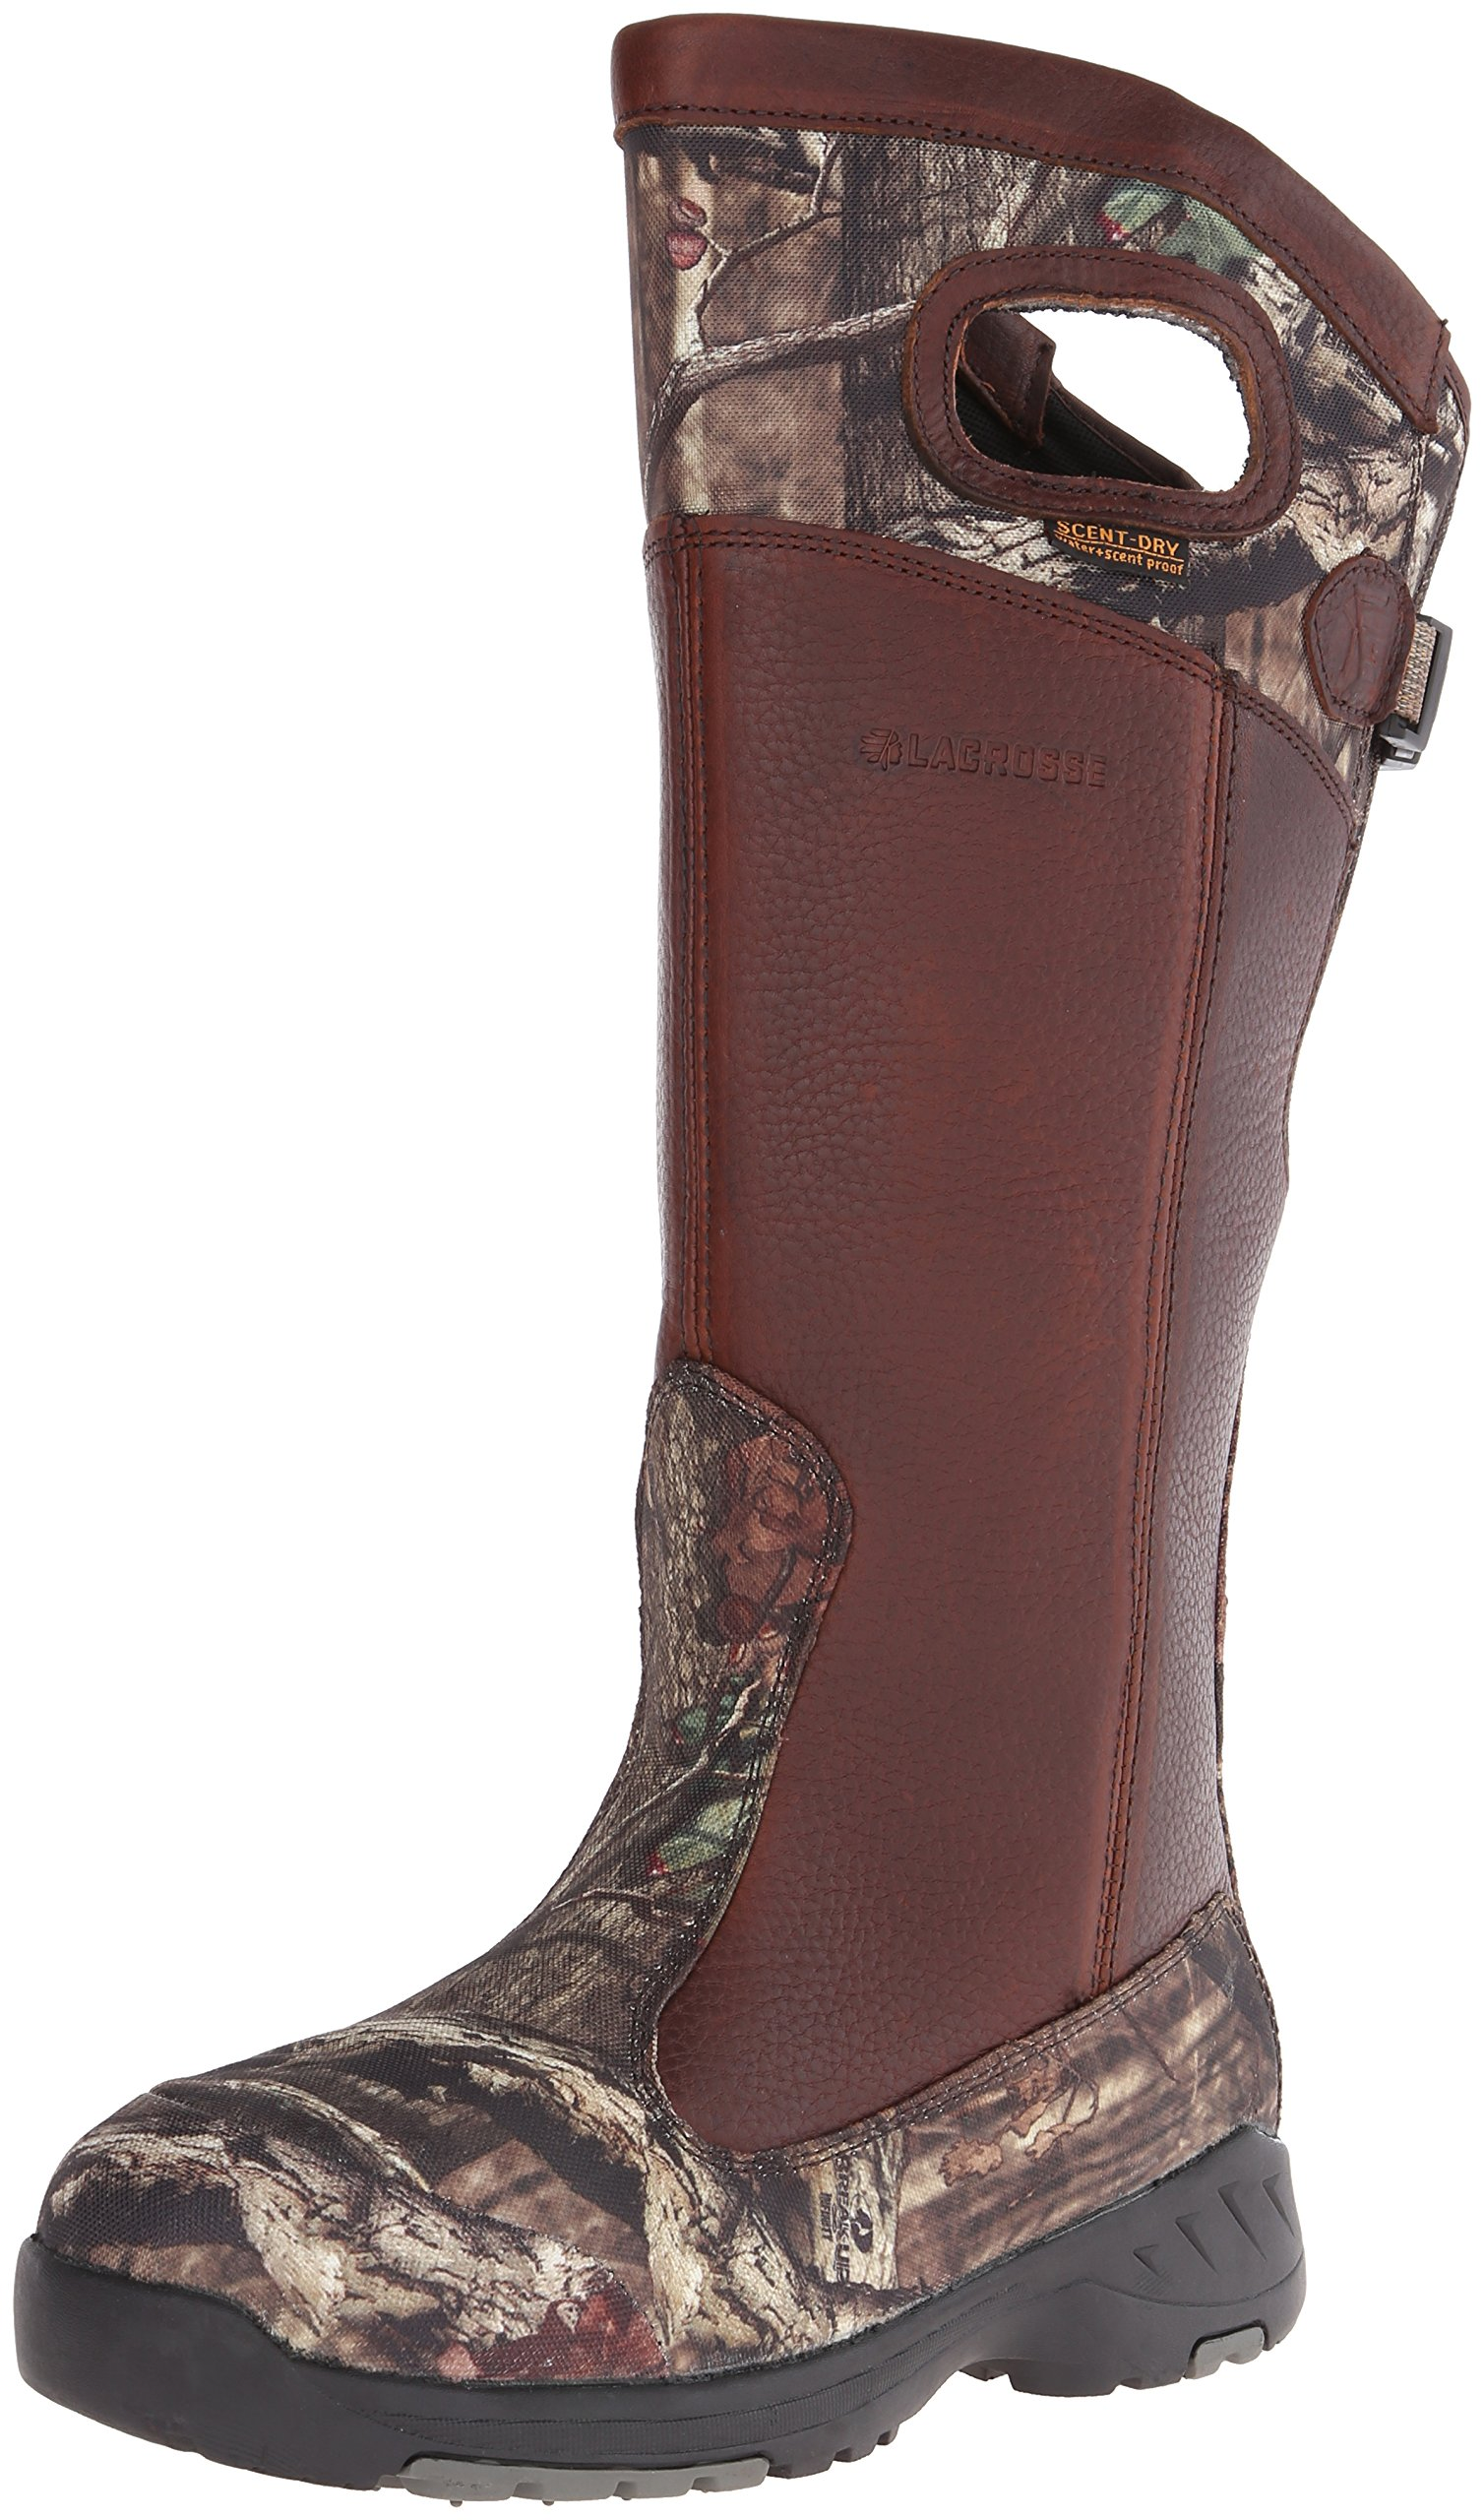 "LaCrosse Men's Adder 18"" Snake Boot,Brown/Mossy Oak Infinity,10 M US"